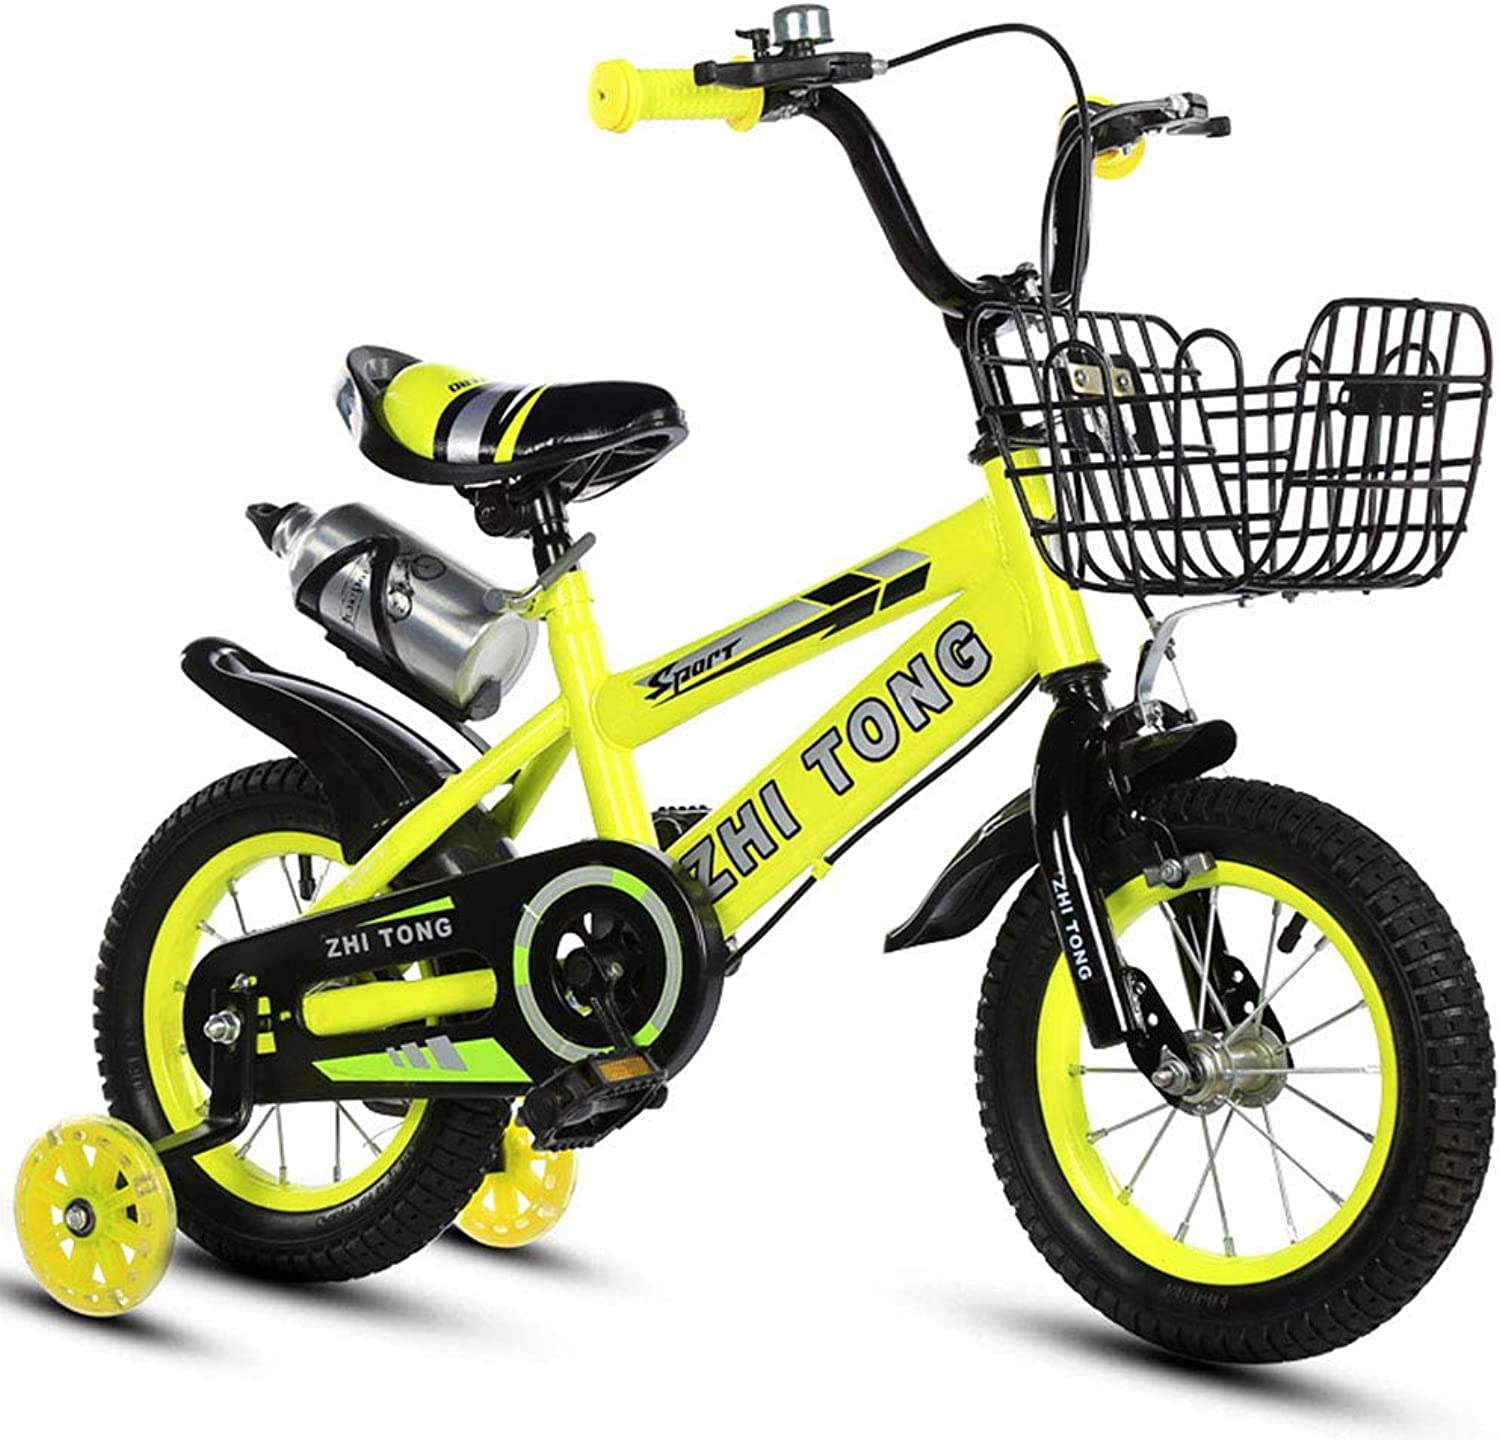 LHLCG Kids Kids Kids Bike 12 14 16 18 Inch Baby Bicycle with Auxiliary Wheel Ages 29 e1b734